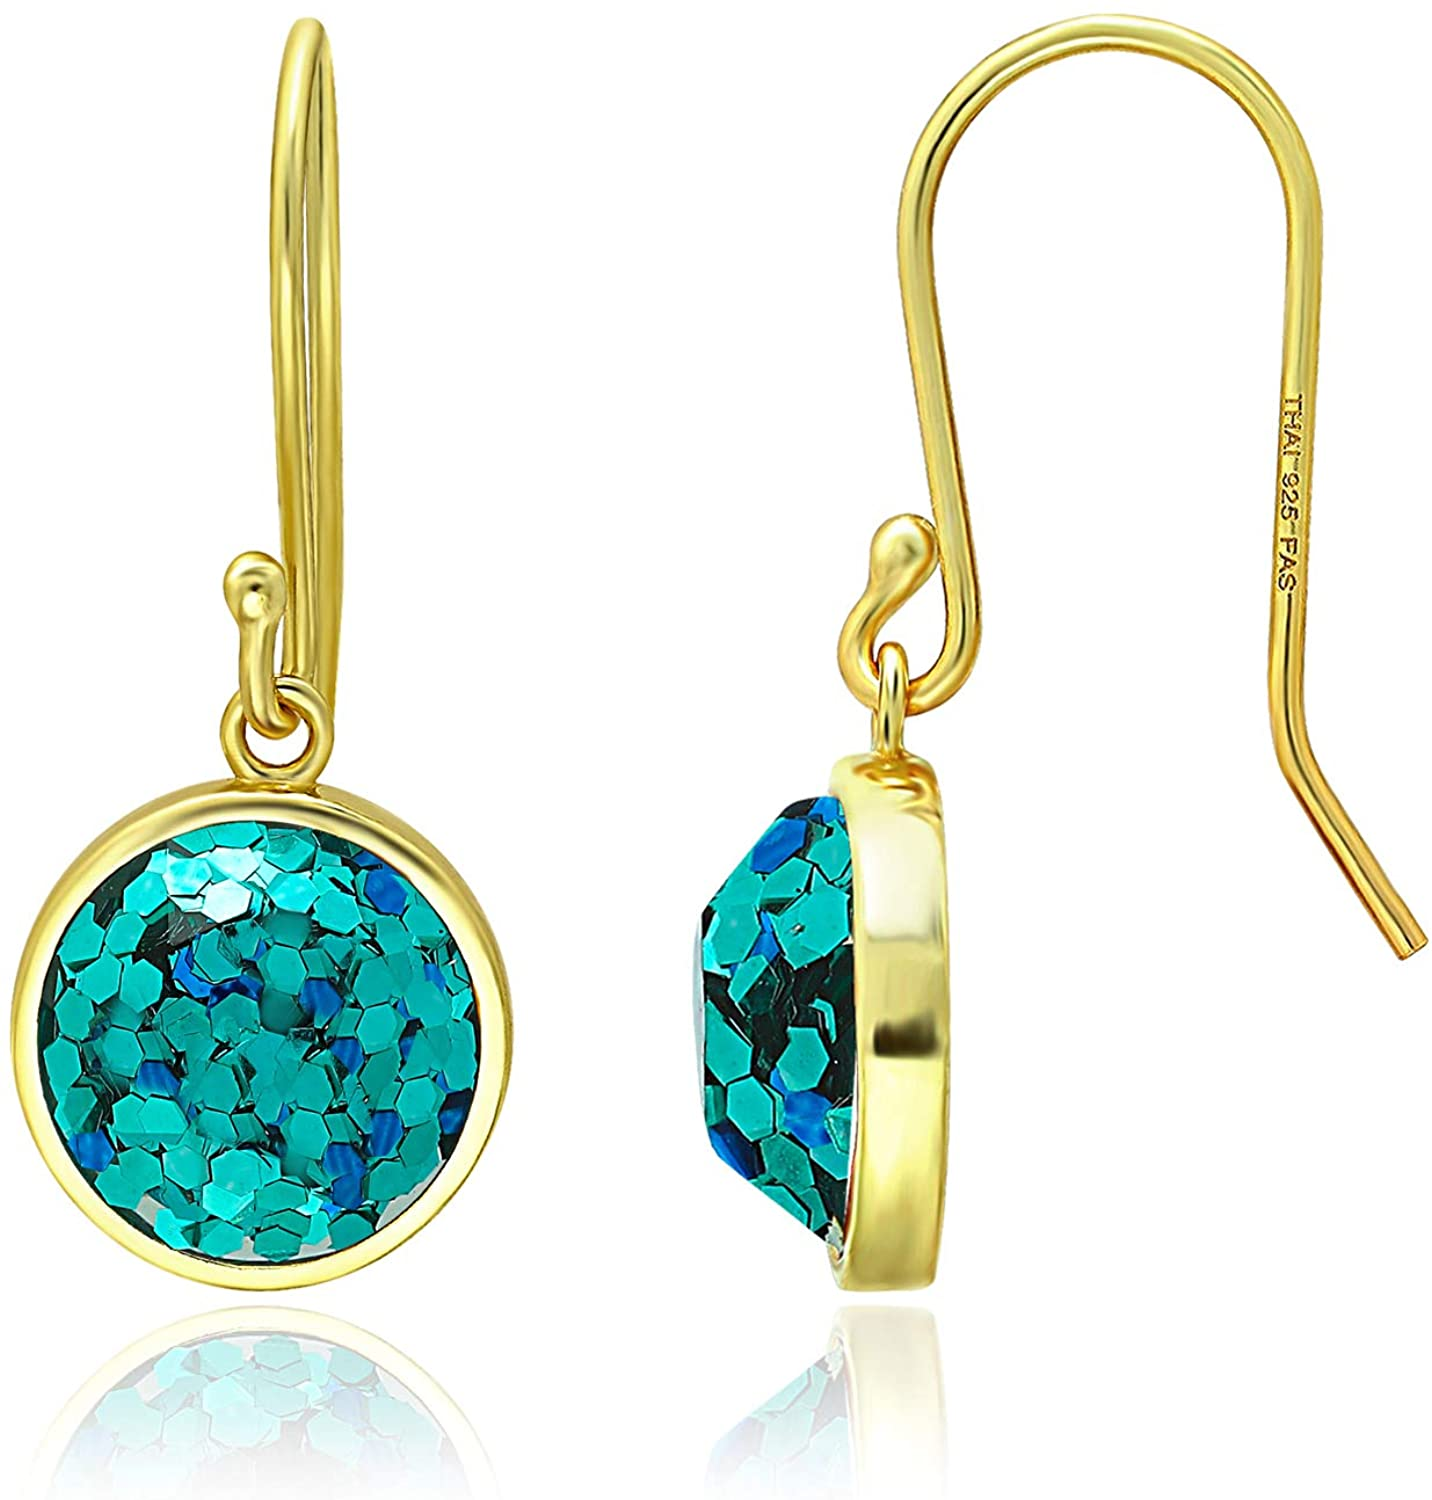 925 Sterling Silver Round Faceted Glitter Drop Dangle Earrings for Women, 10mm Christmas, New Year